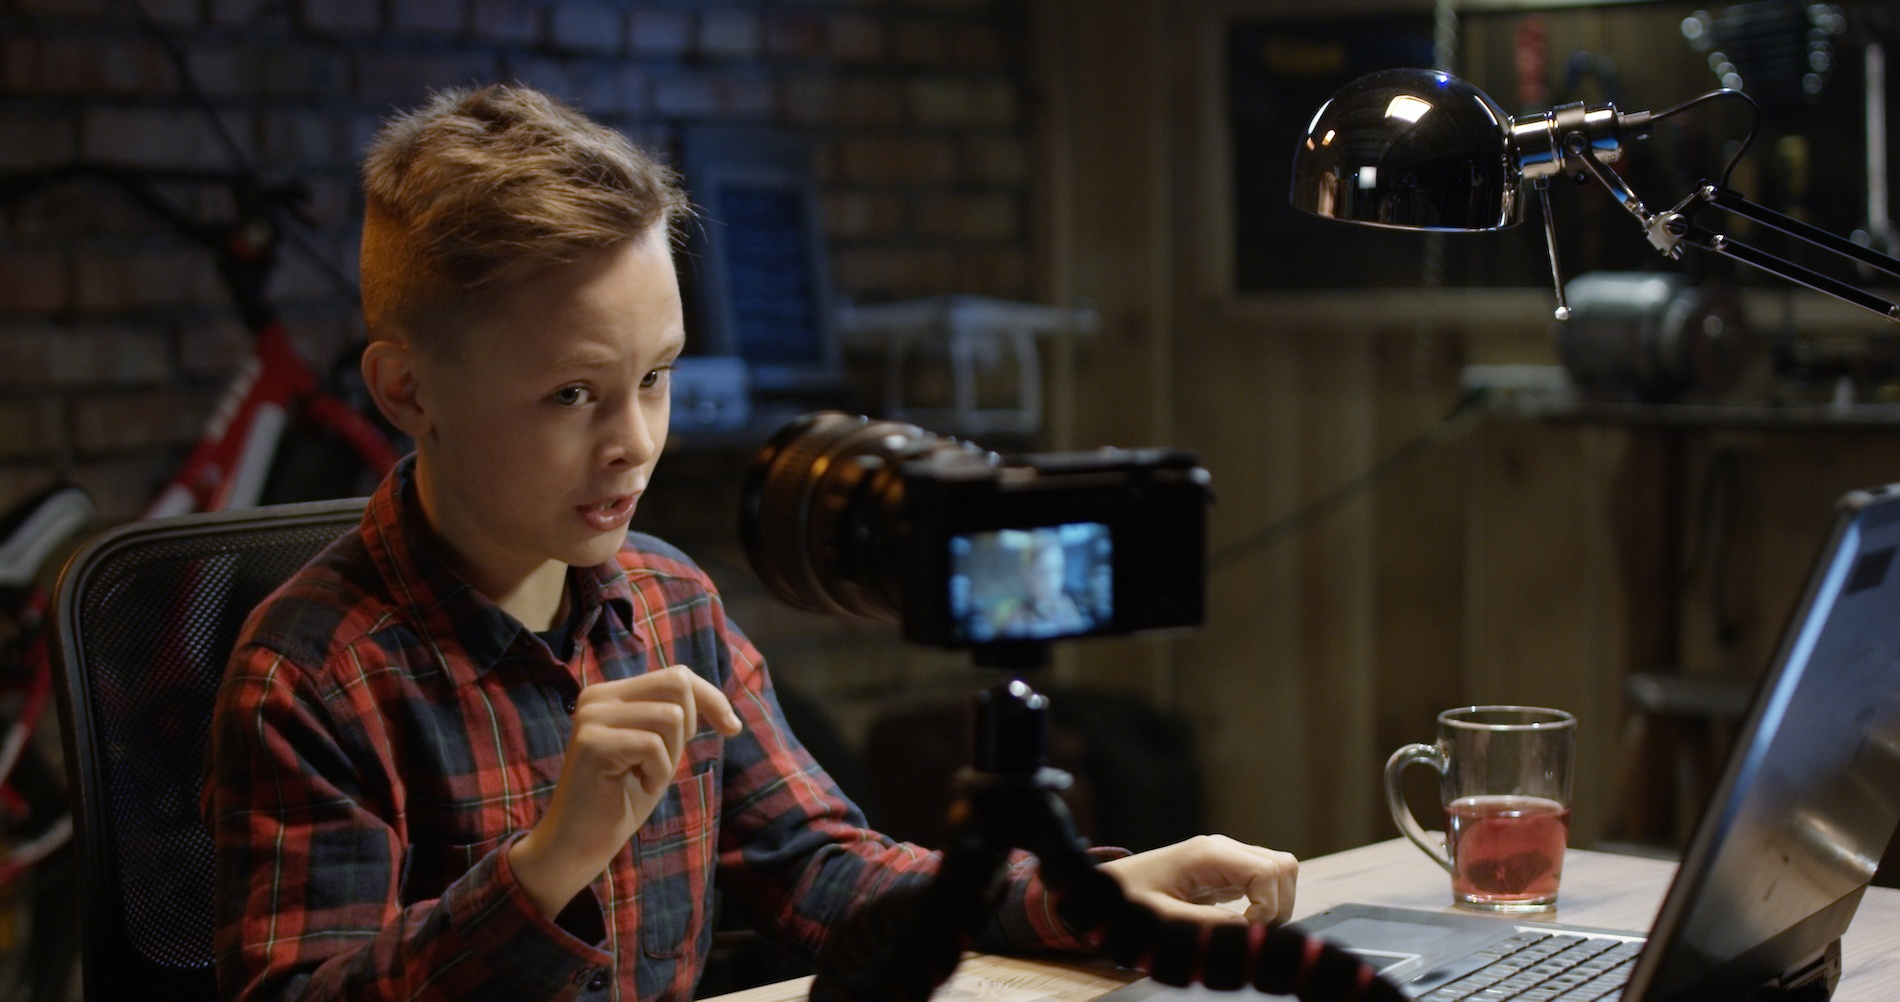 6 Tips for Starting Your Child Actor's YouTube Channel